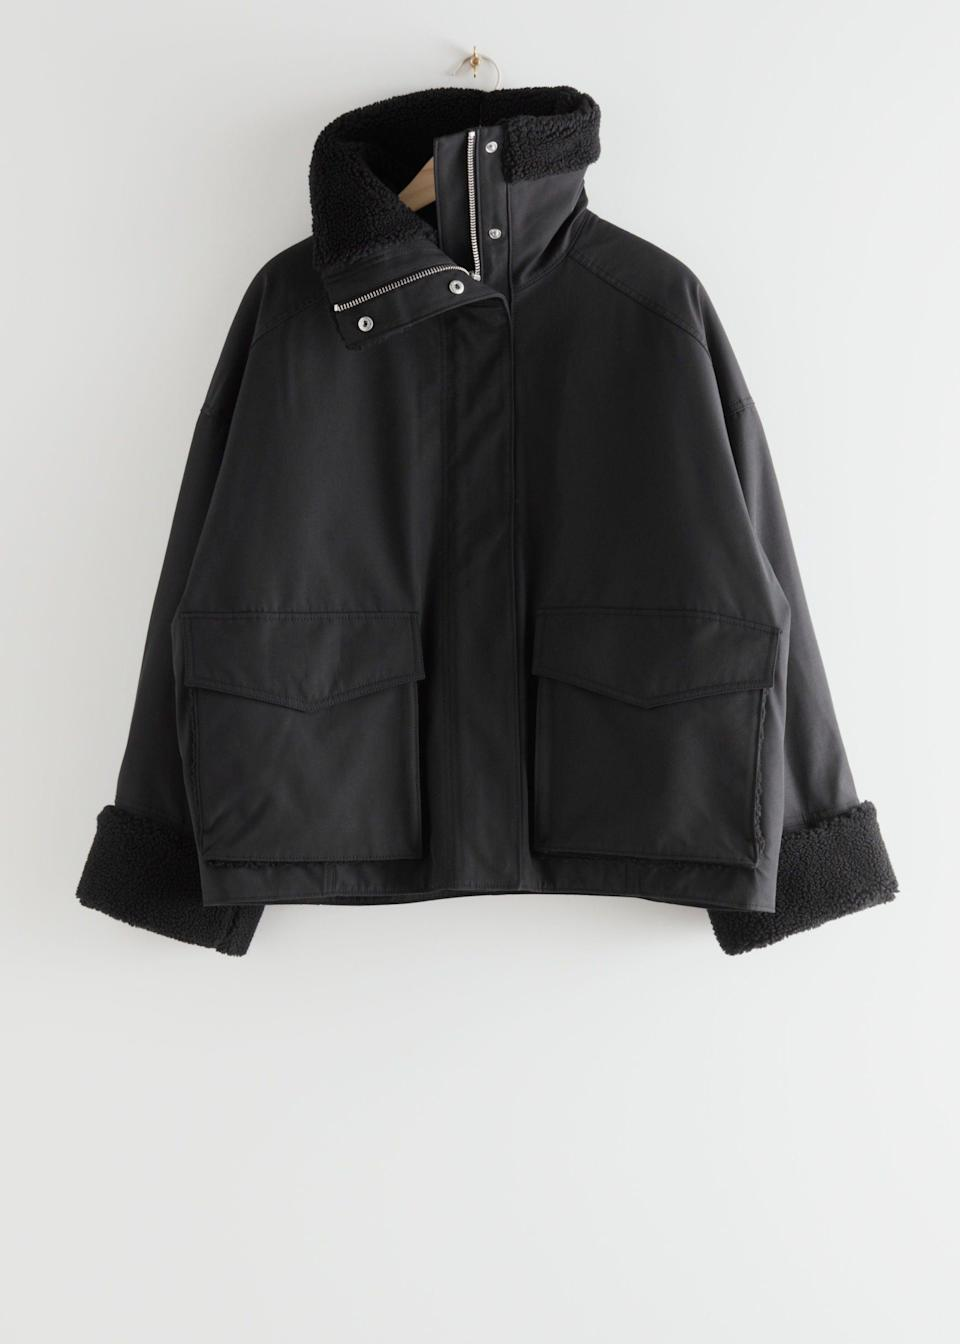 """<br><br><strong>& Other Stories</strong> Oversized Boxy Shearling Jacket, $, available at <a href=""""https://www.stories.com/en_gbp/clothing/jackets-coats/jackets/product.oversized-boxy-shearling-jacket-black.0878973001.html?gclid=Cj0KCQjw28T8BRDbARIsAEOMBcw3OKl7EtjVXz_clfVfCBmmpC6n9nYR4nikQyMQmfkaAXitRJdF120aArx8EALw_wcB"""" rel=""""nofollow noopener"""" target=""""_blank"""" data-ylk=""""slk:& Other Stories"""" class=""""link rapid-noclick-resp"""">& Other Stories</a>"""